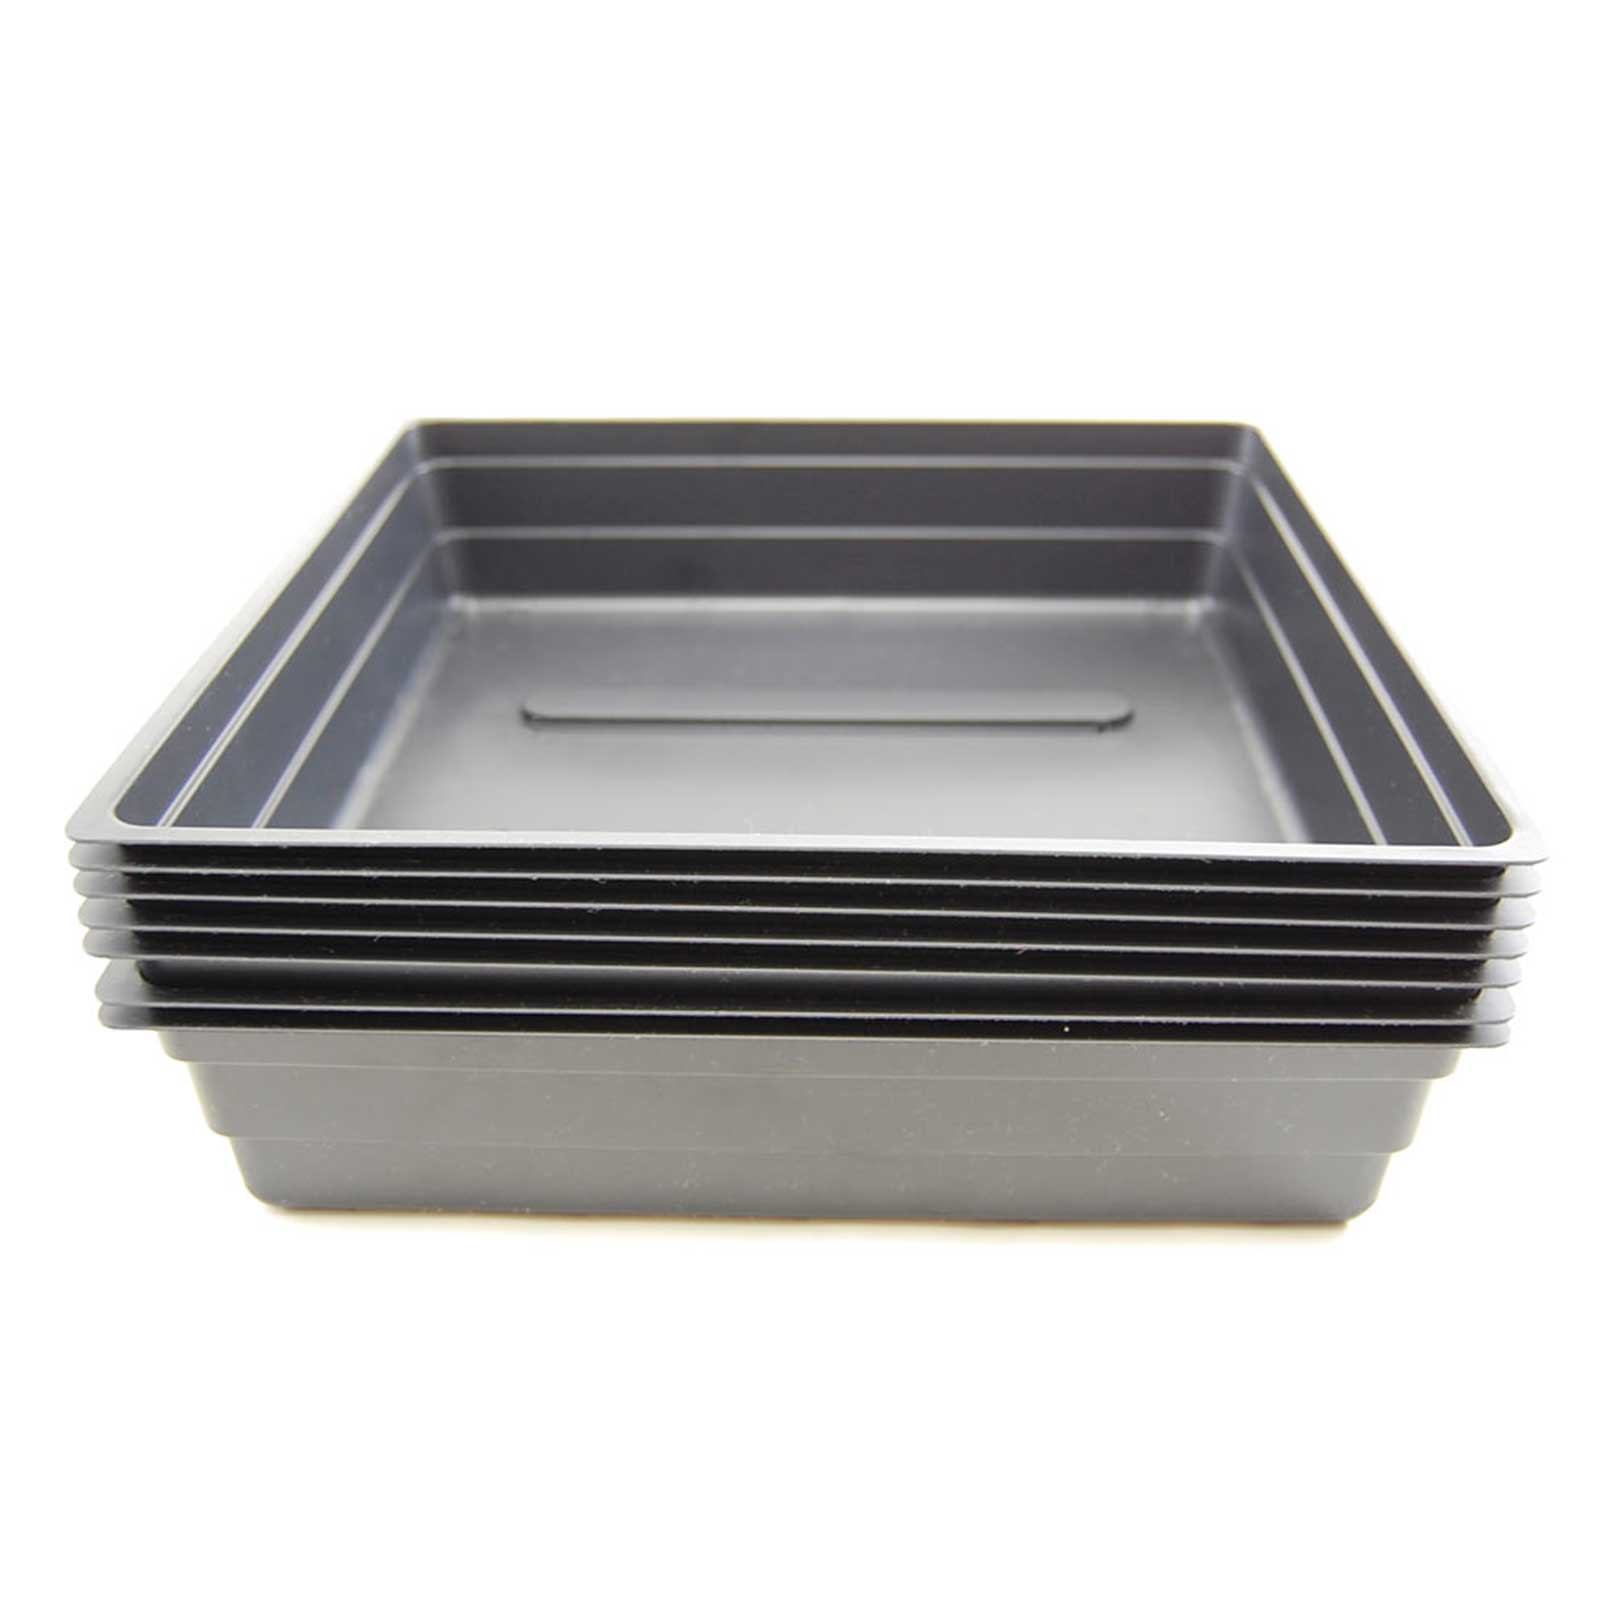 10x10 inch growing trays without drain holes. Half the size of our normal plant / wheatgrass growing trays. Works well as drip tray, or for growing wheatgrass and other growing applications. Re-usable growing tray. Choose Quantity: